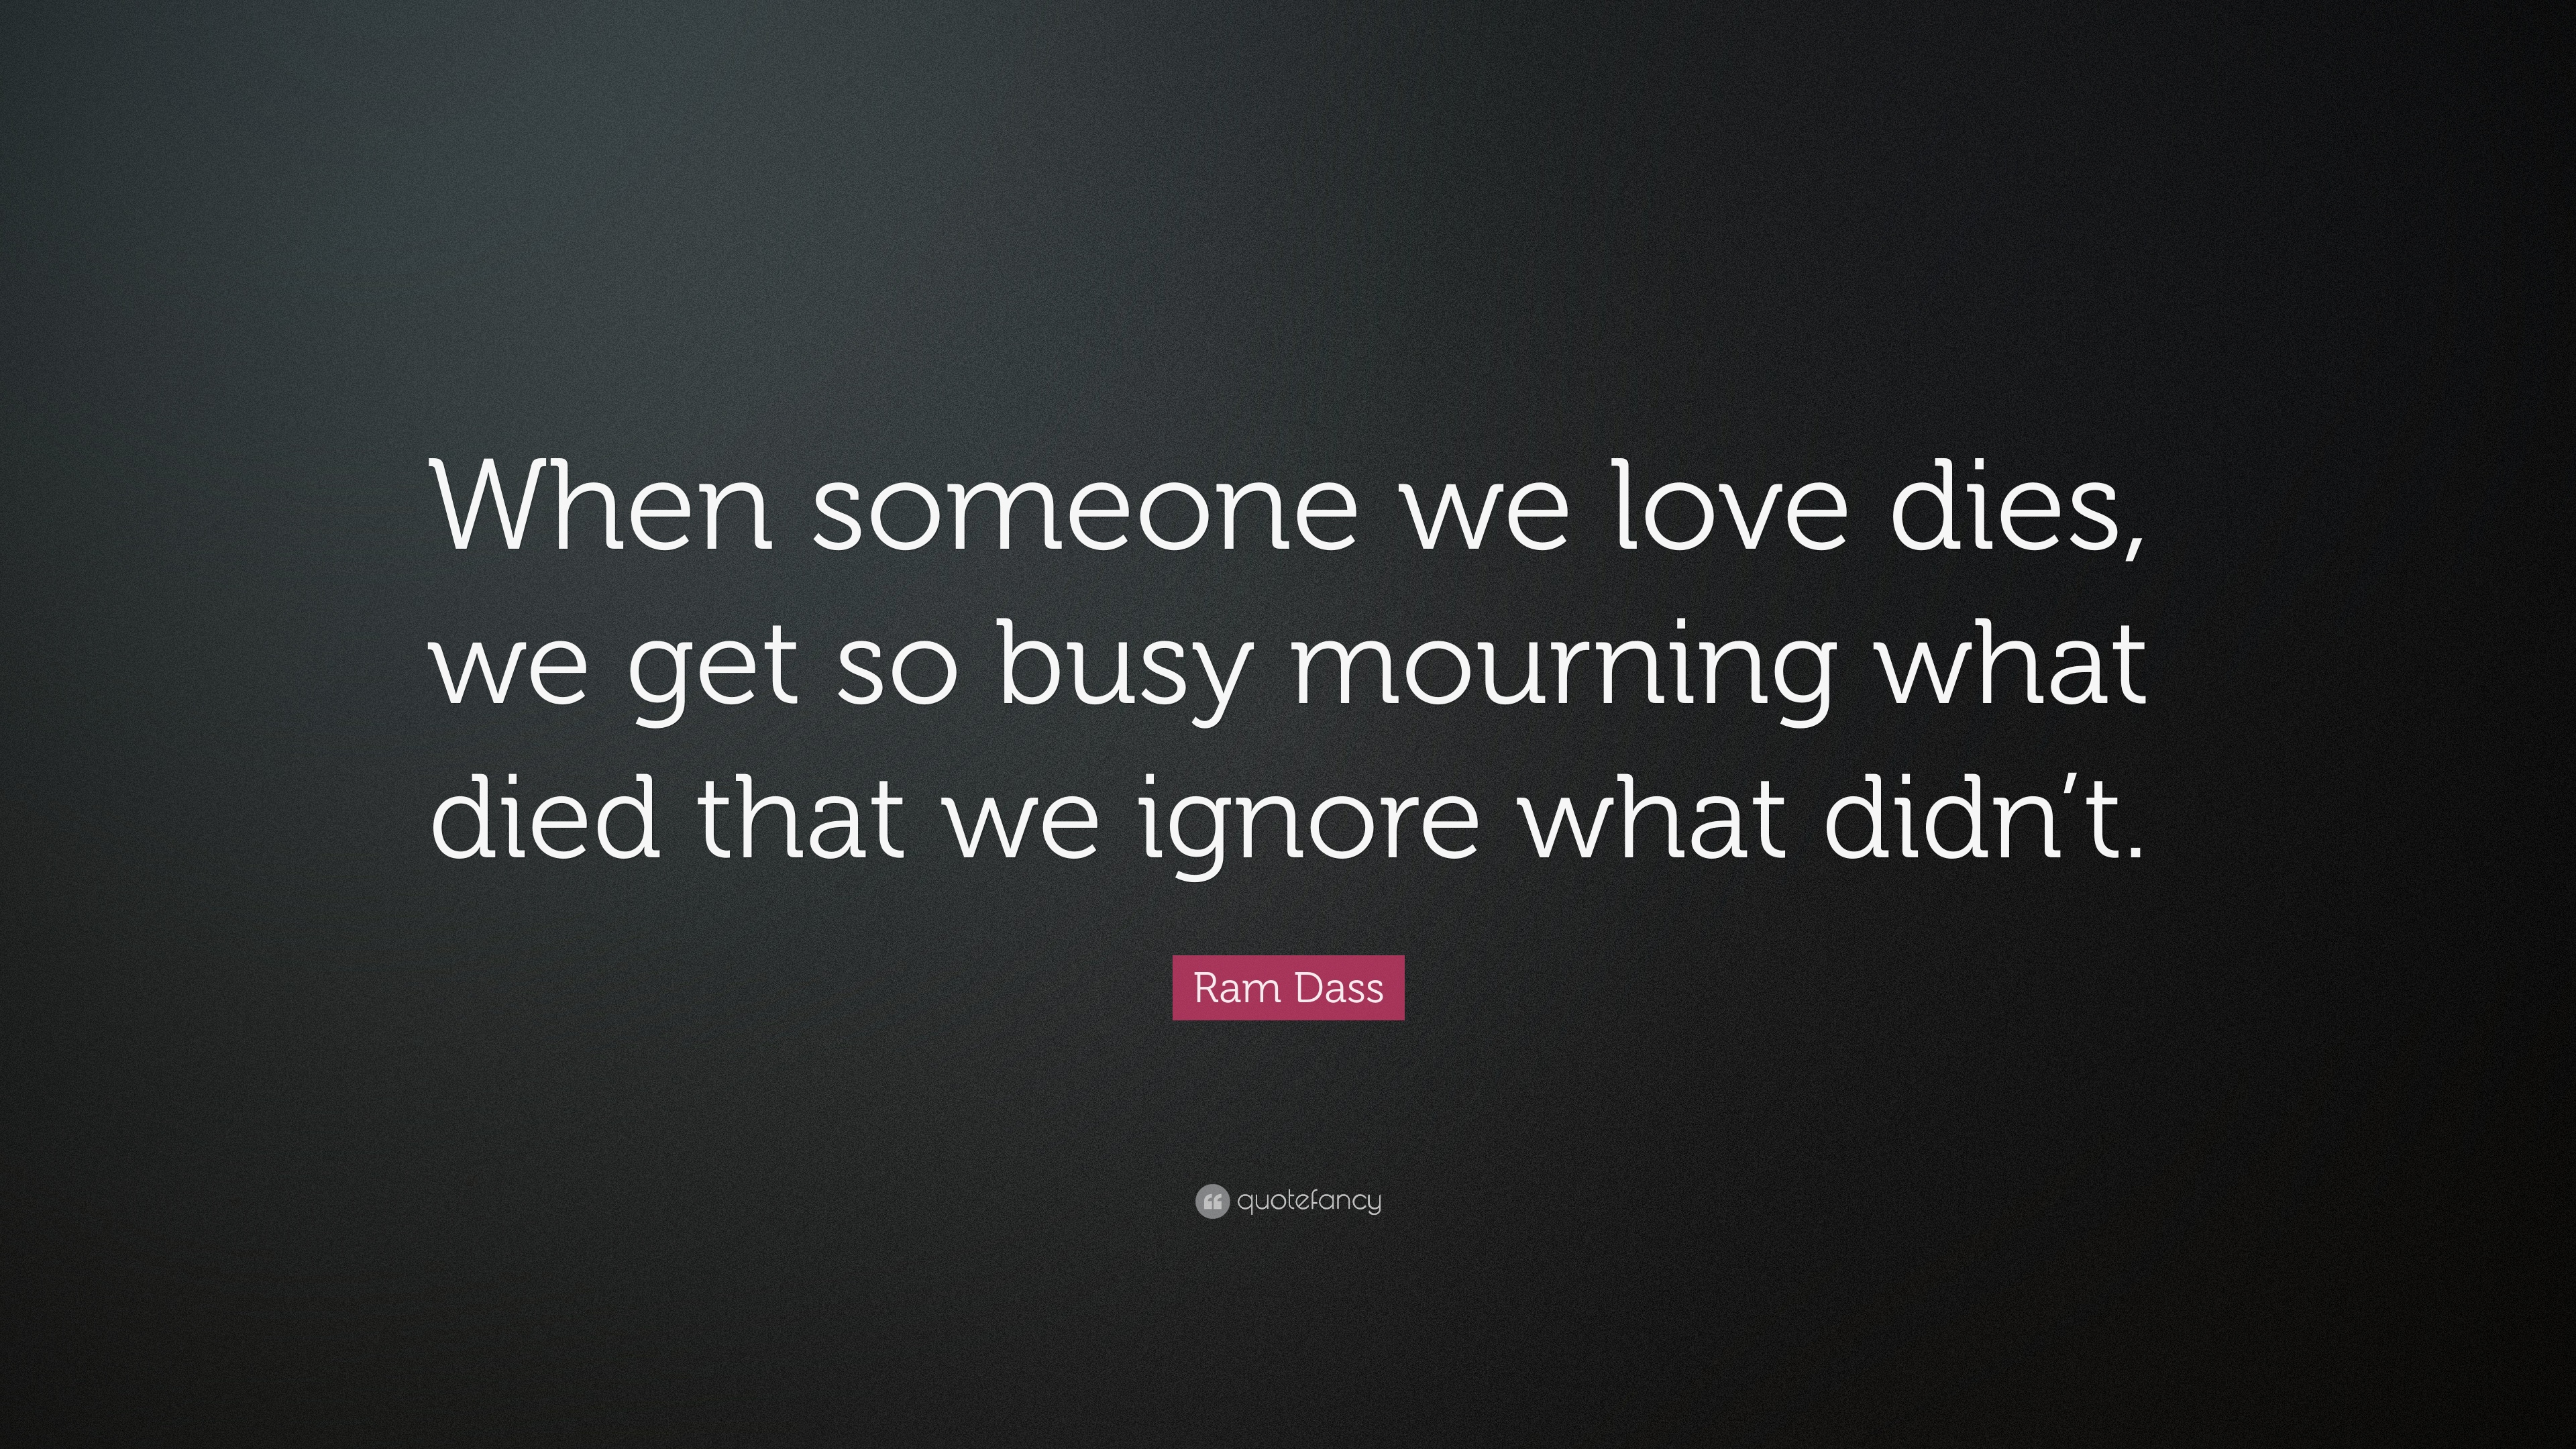 Ram Dass Quote When Someone We Love Dies We Get So Busy Mourning